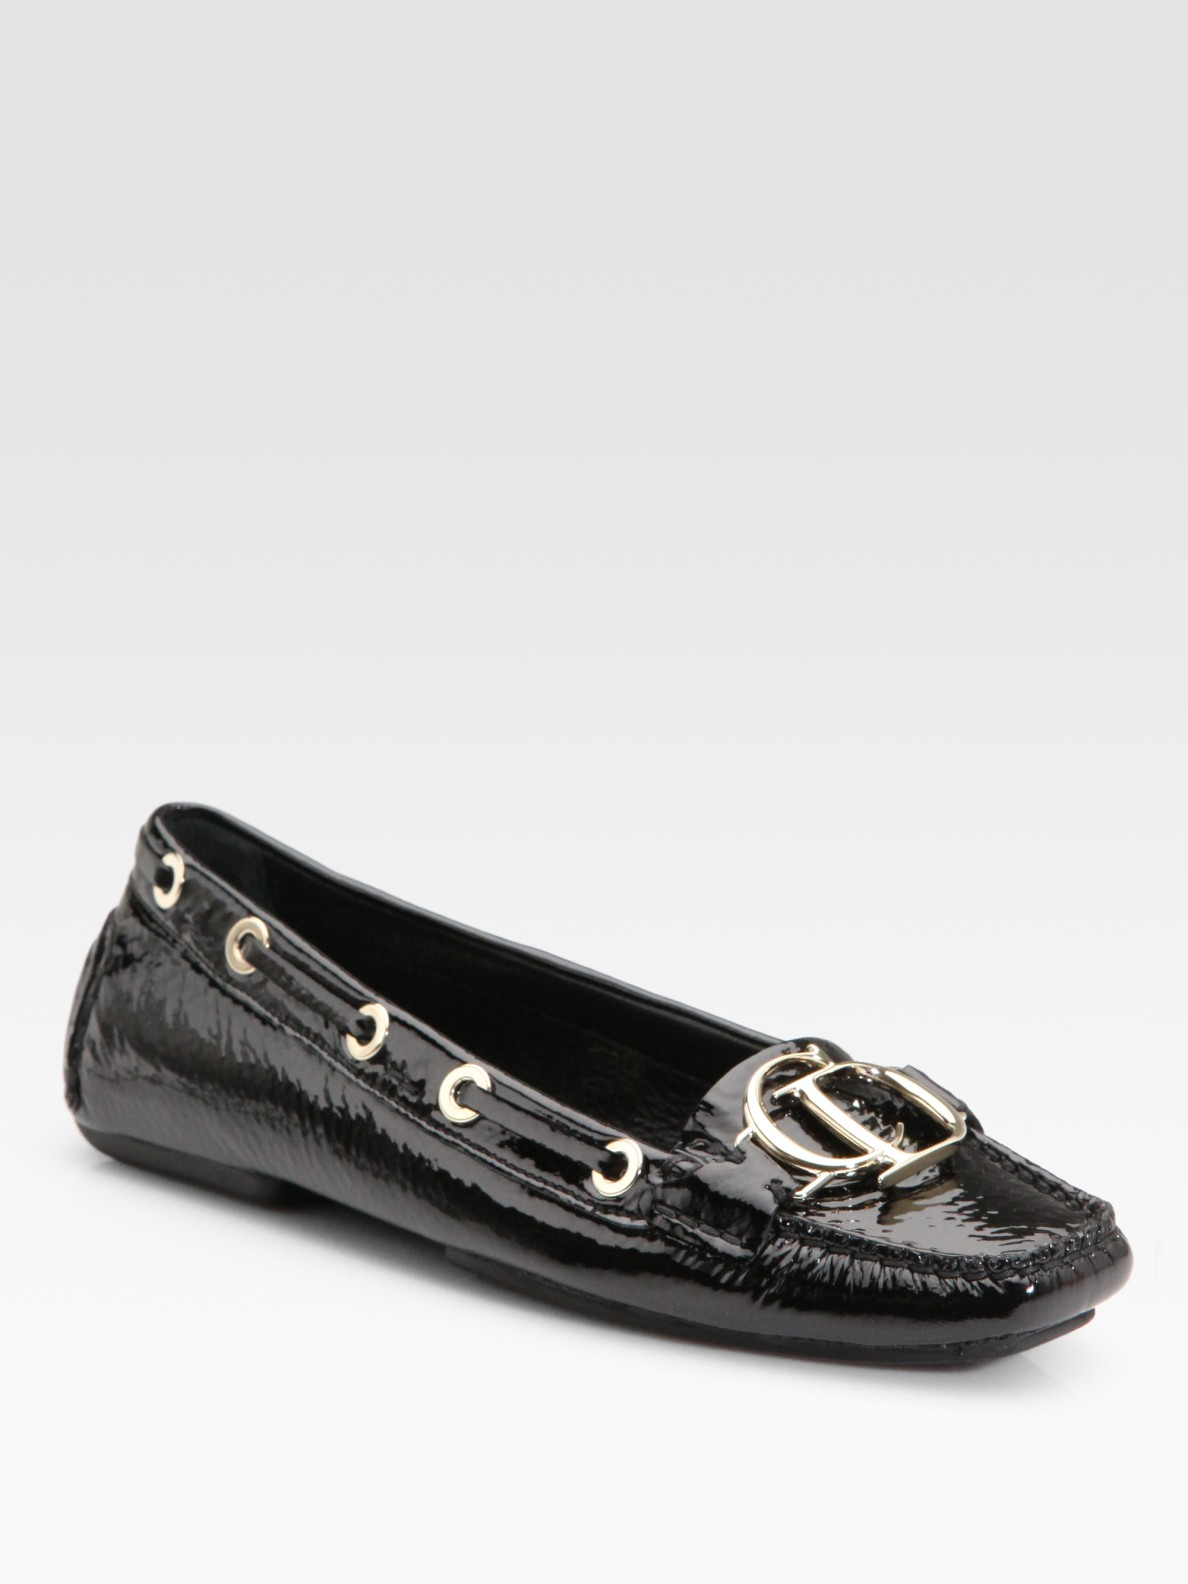 bbd1e711f64 Lyst - Dior Black Patent Leather Cd Loafers in Black